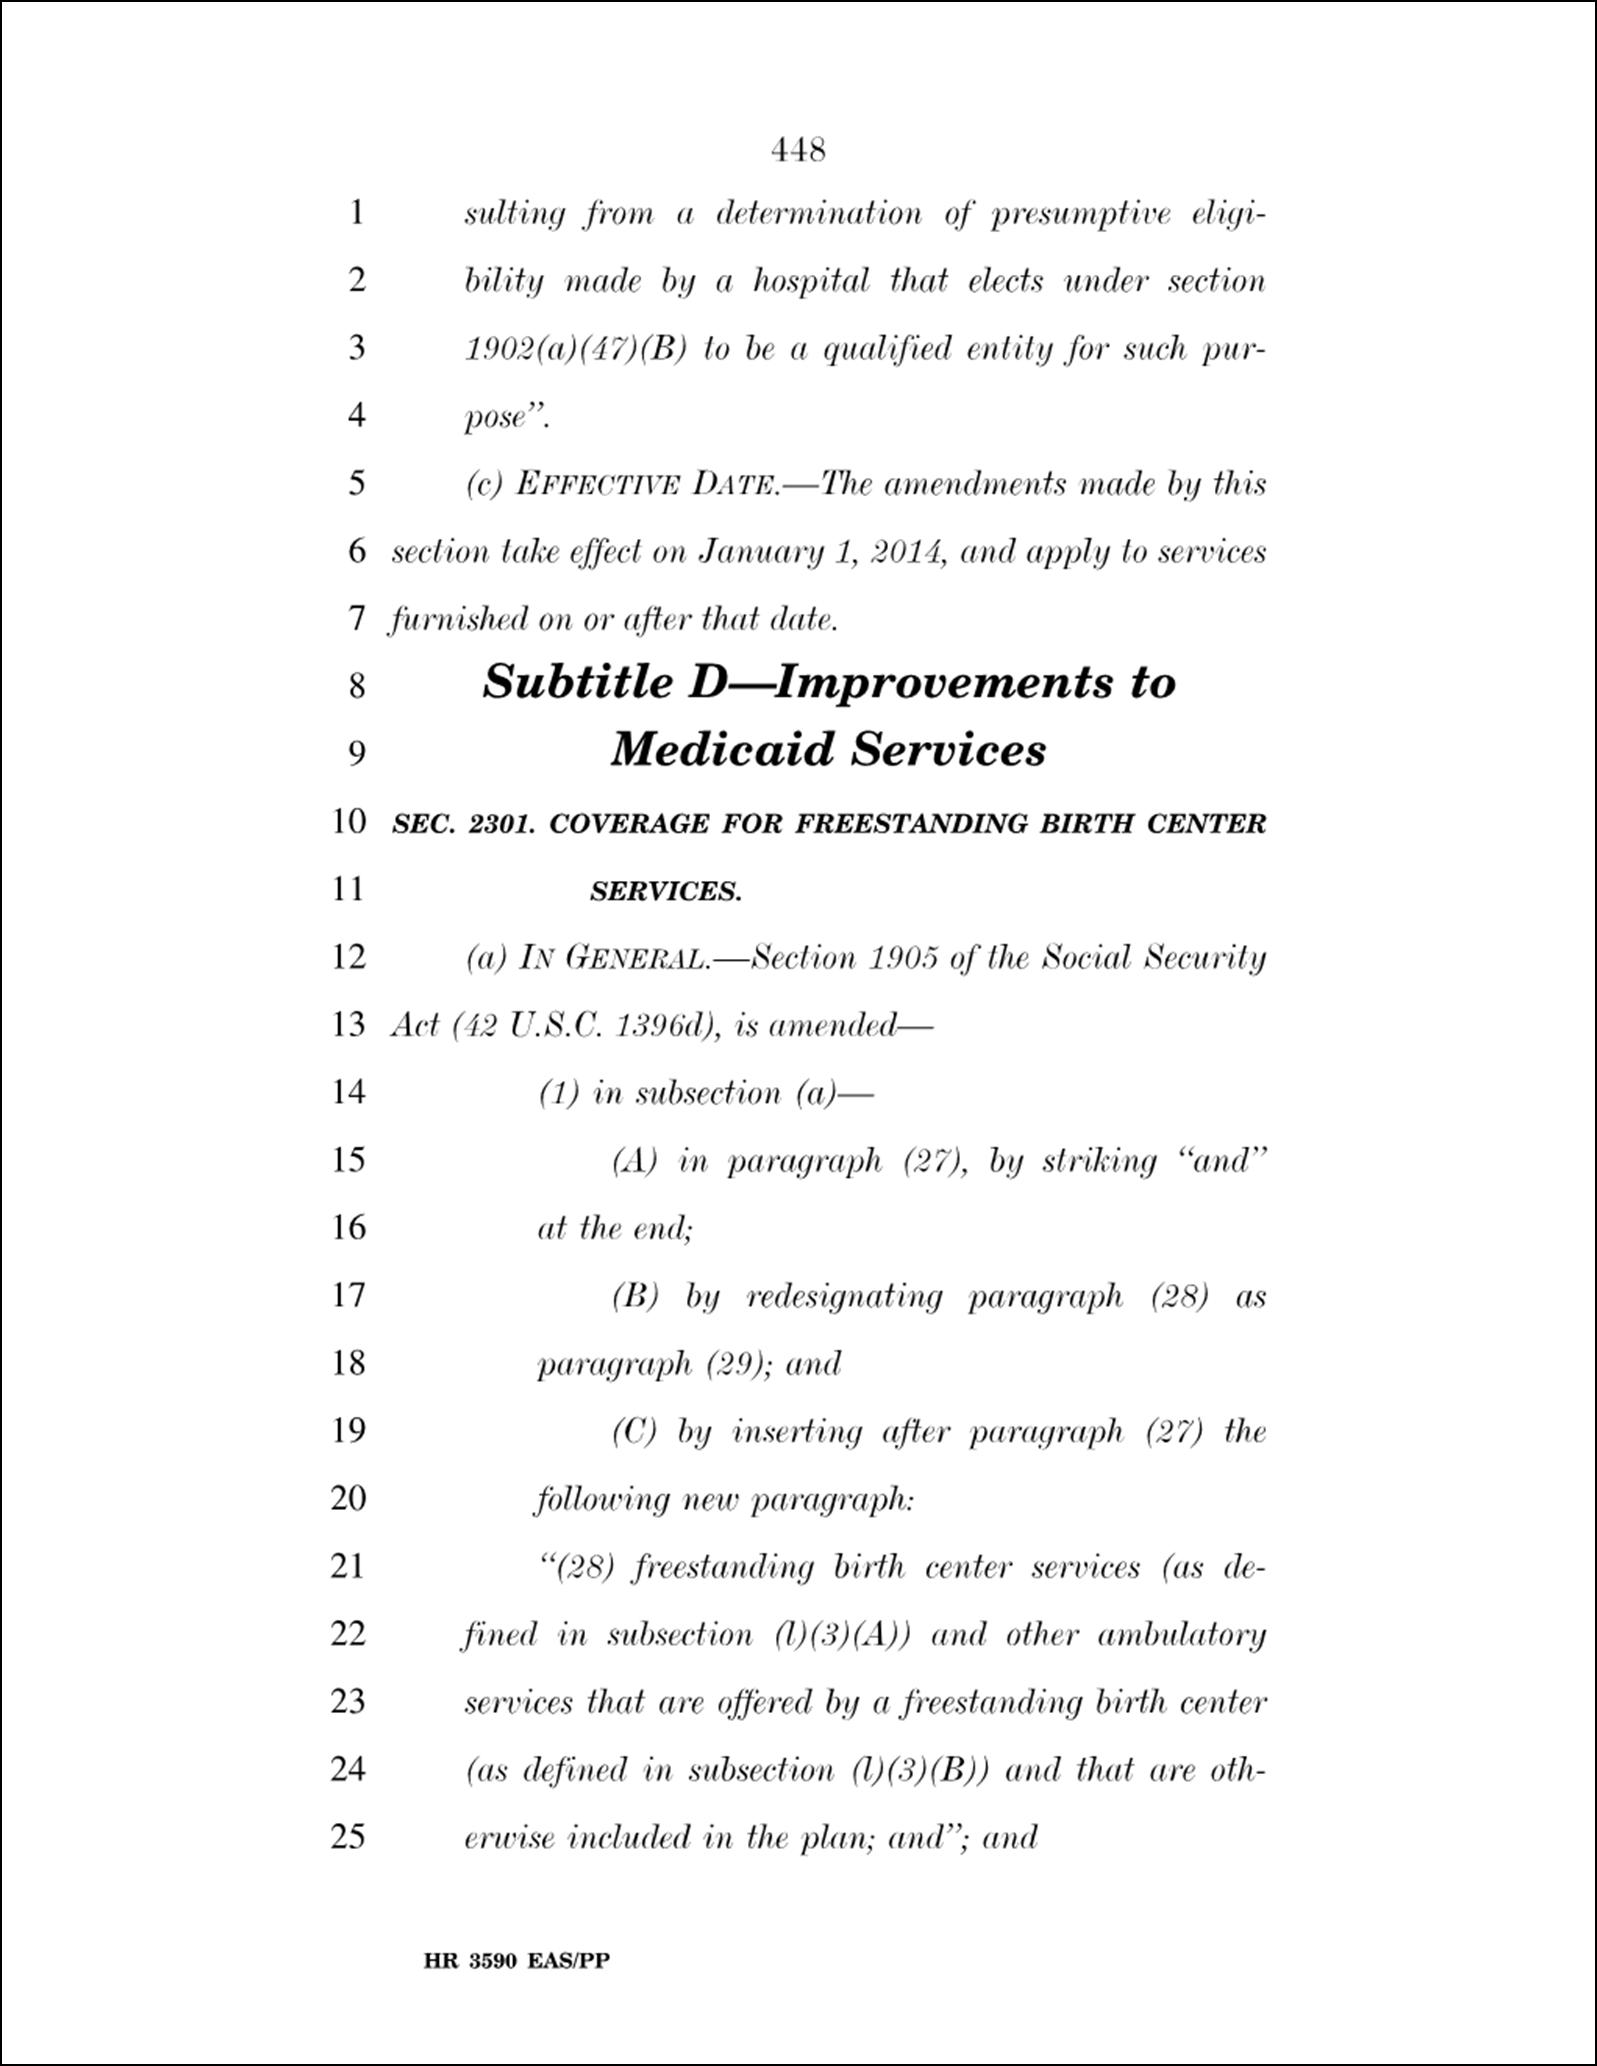 Page 448 of Health Reform Bill